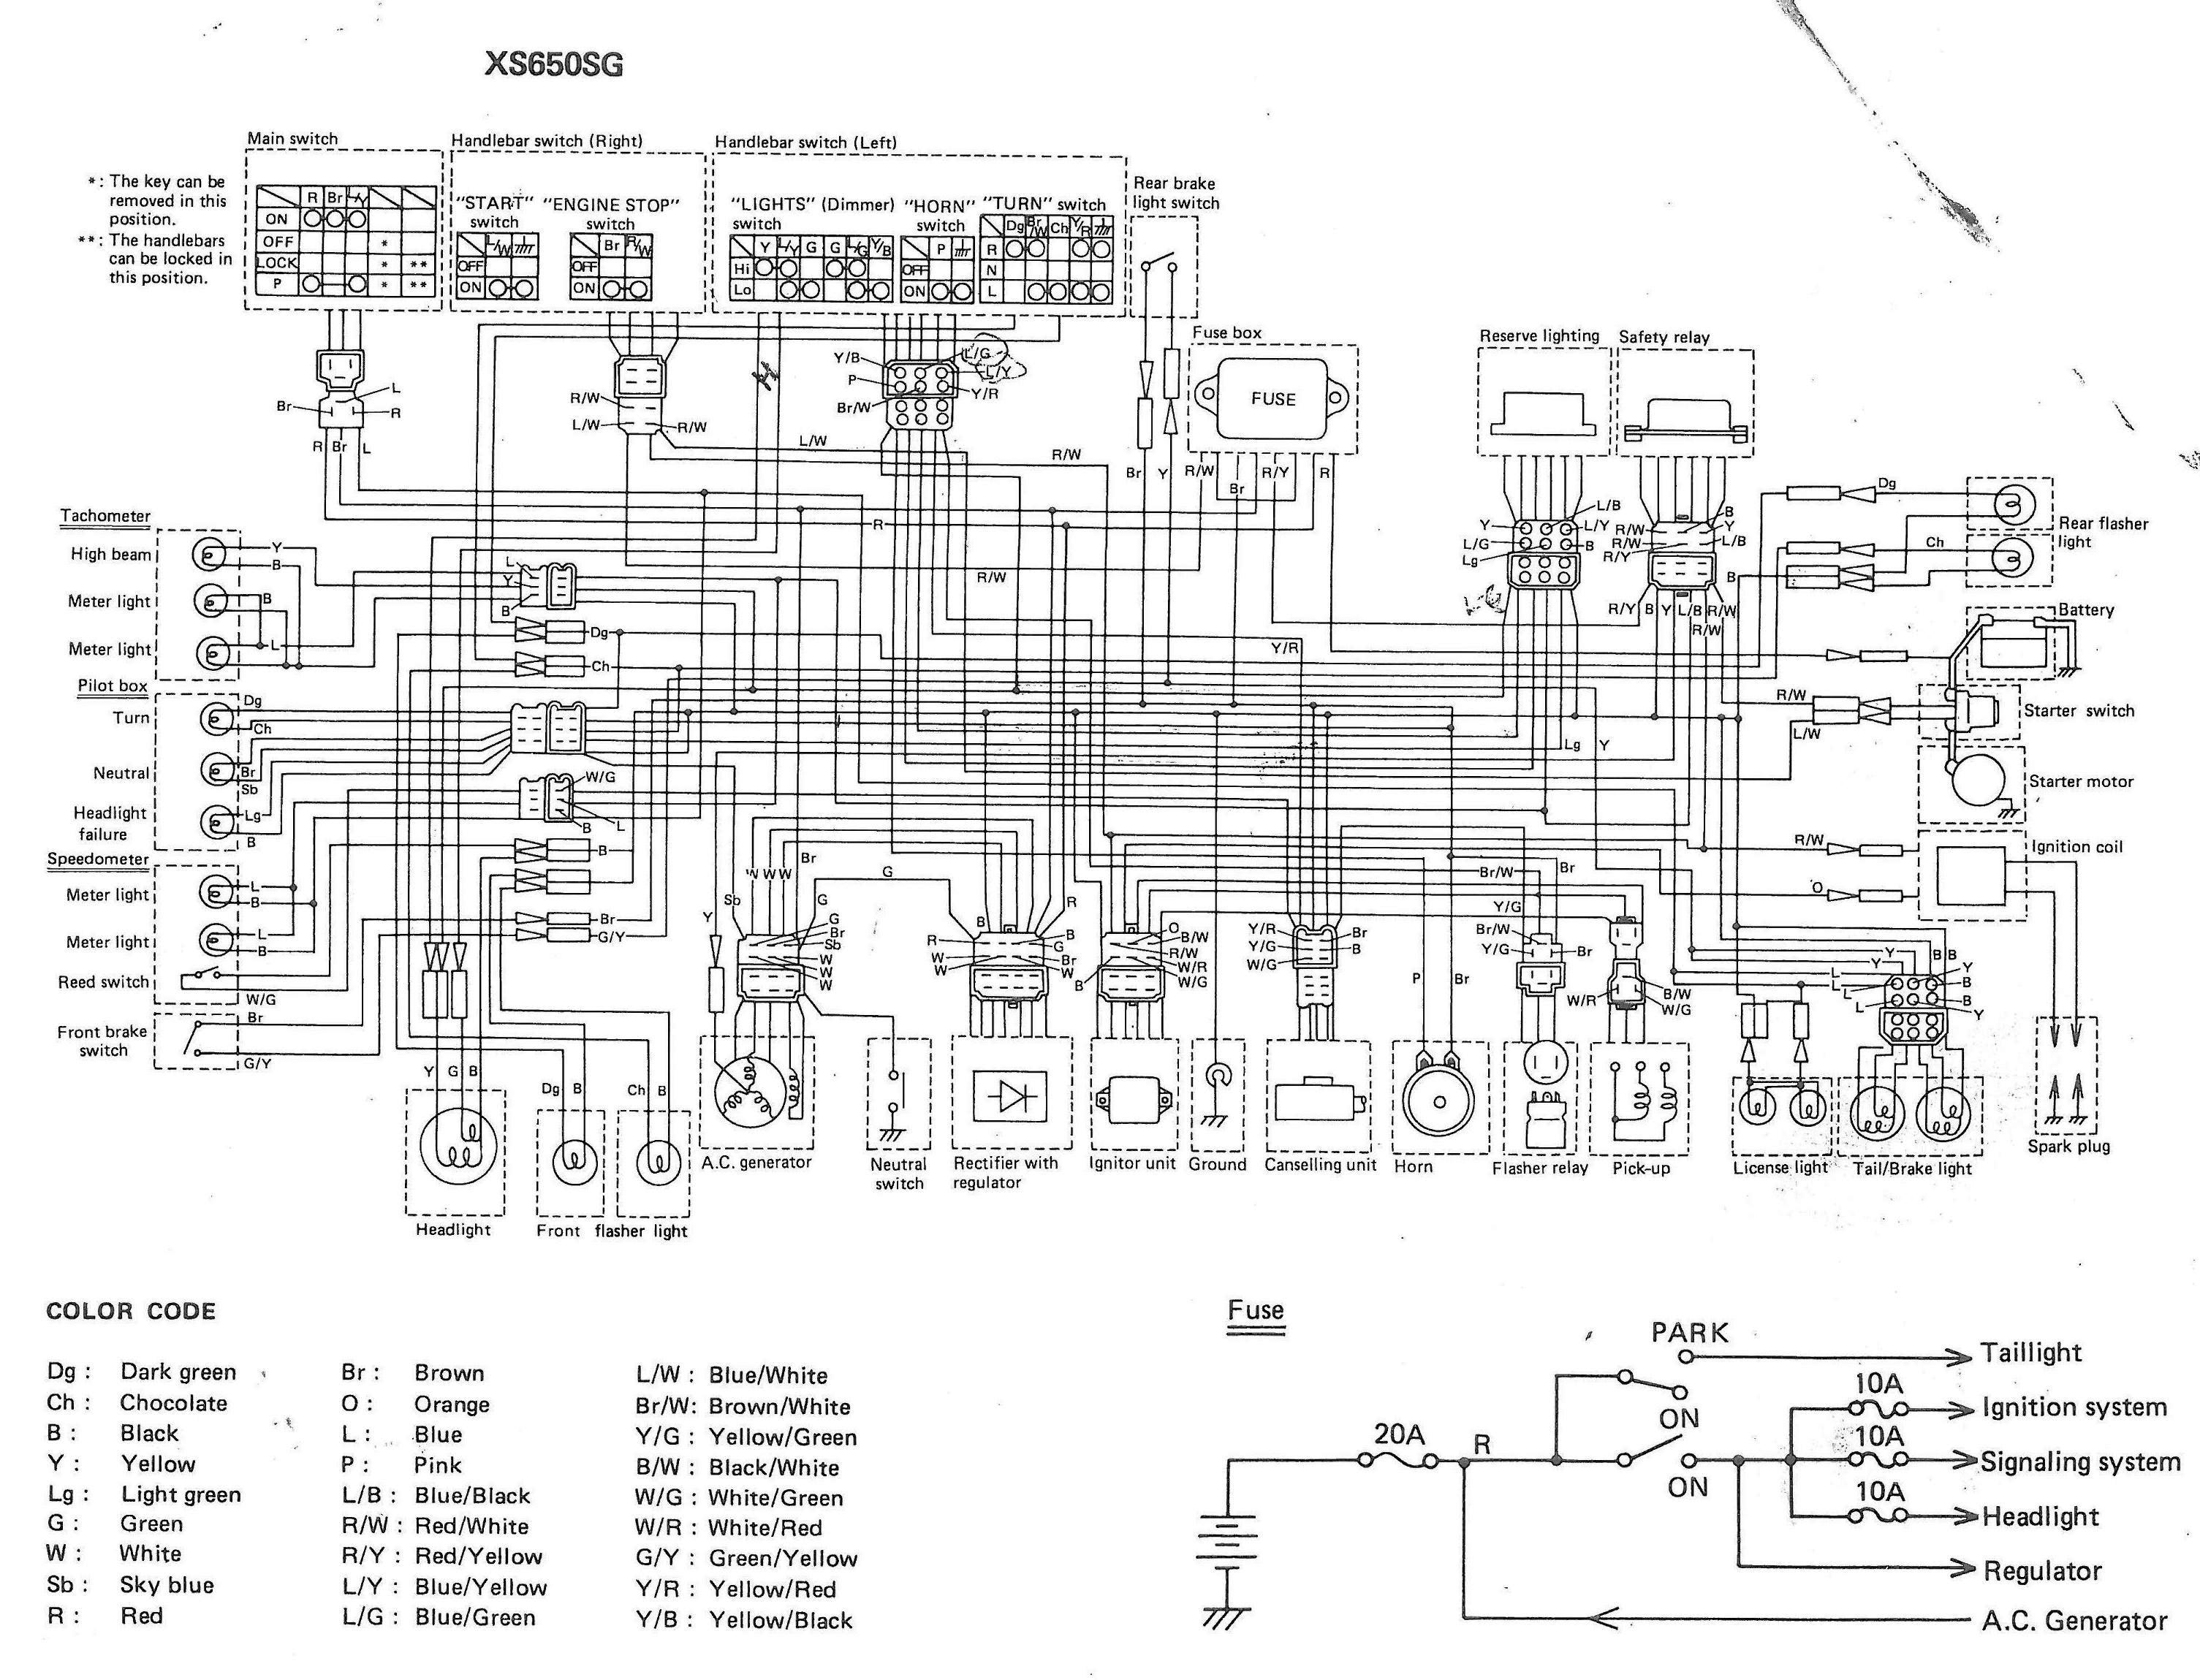 1981 yamaha xs850 wiring diagram electrical wiring diagrams fjr1300 wiring diagram 1981 yamaha xs850 wiring diagram smart wiring diagrams \\u2022 yamaha xs850 charging system 1981 yamaha xs850 wiring diagram